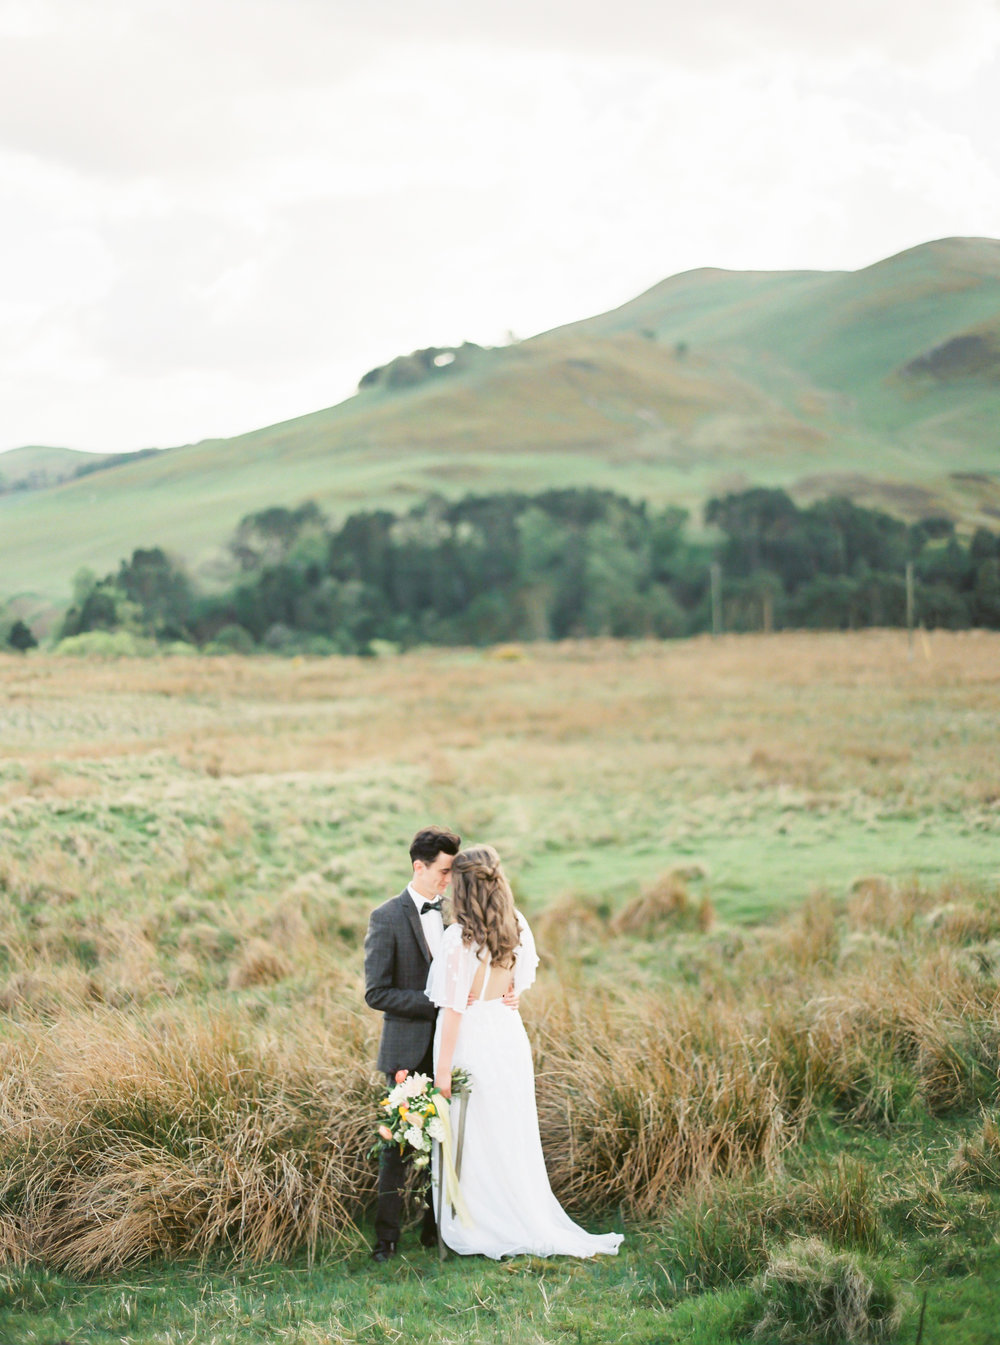 JacquelineAnnePhotography-Between the Heather and The Hills-81.jpg